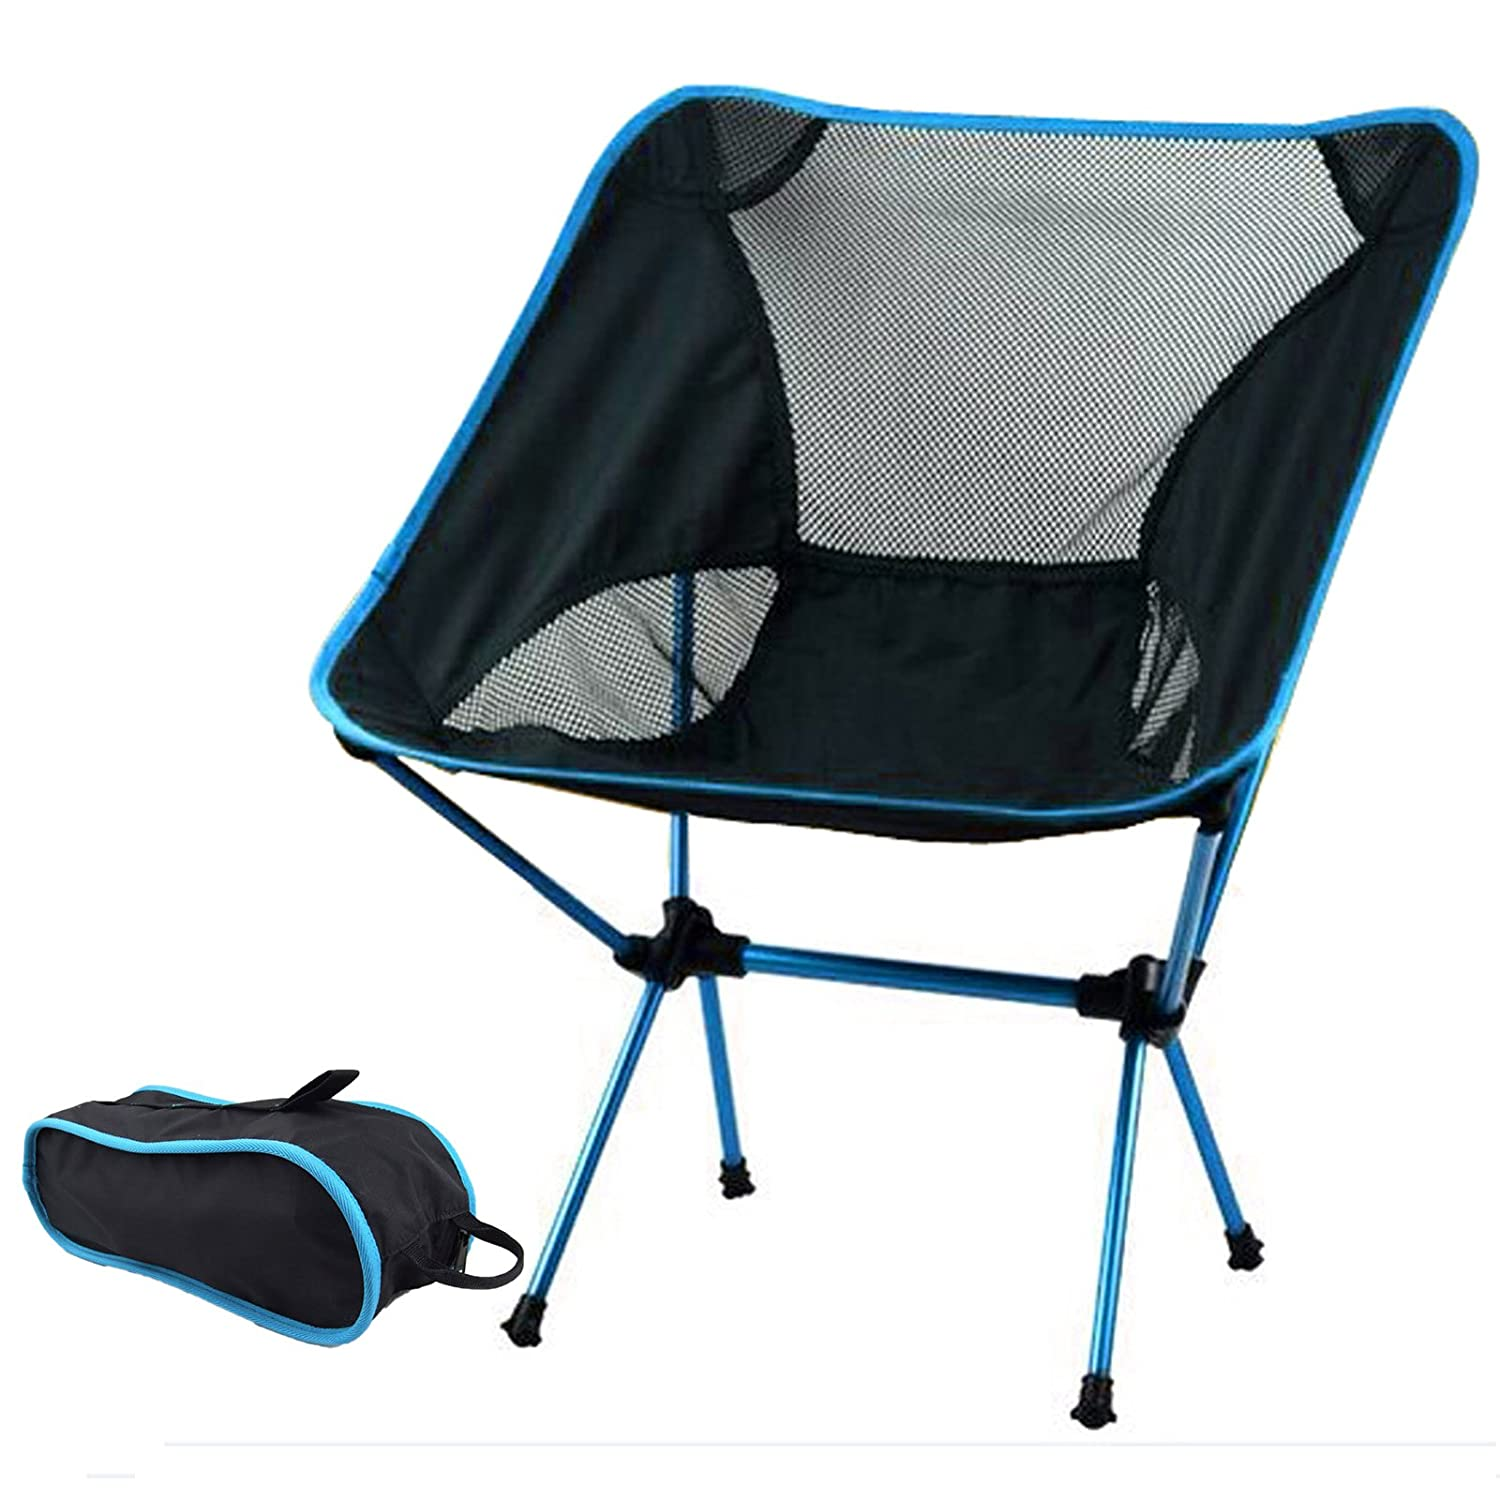 Suyi Portable Lightweight Folding Outdoor Picnic Fishing Camping Chair Backpacking Chairs, Durable 600D Thickening Oxford Cloth, Sturdy Aluminum Alloy Frame, Heavy Duty (Supports 242 lbs), with Carry Bag